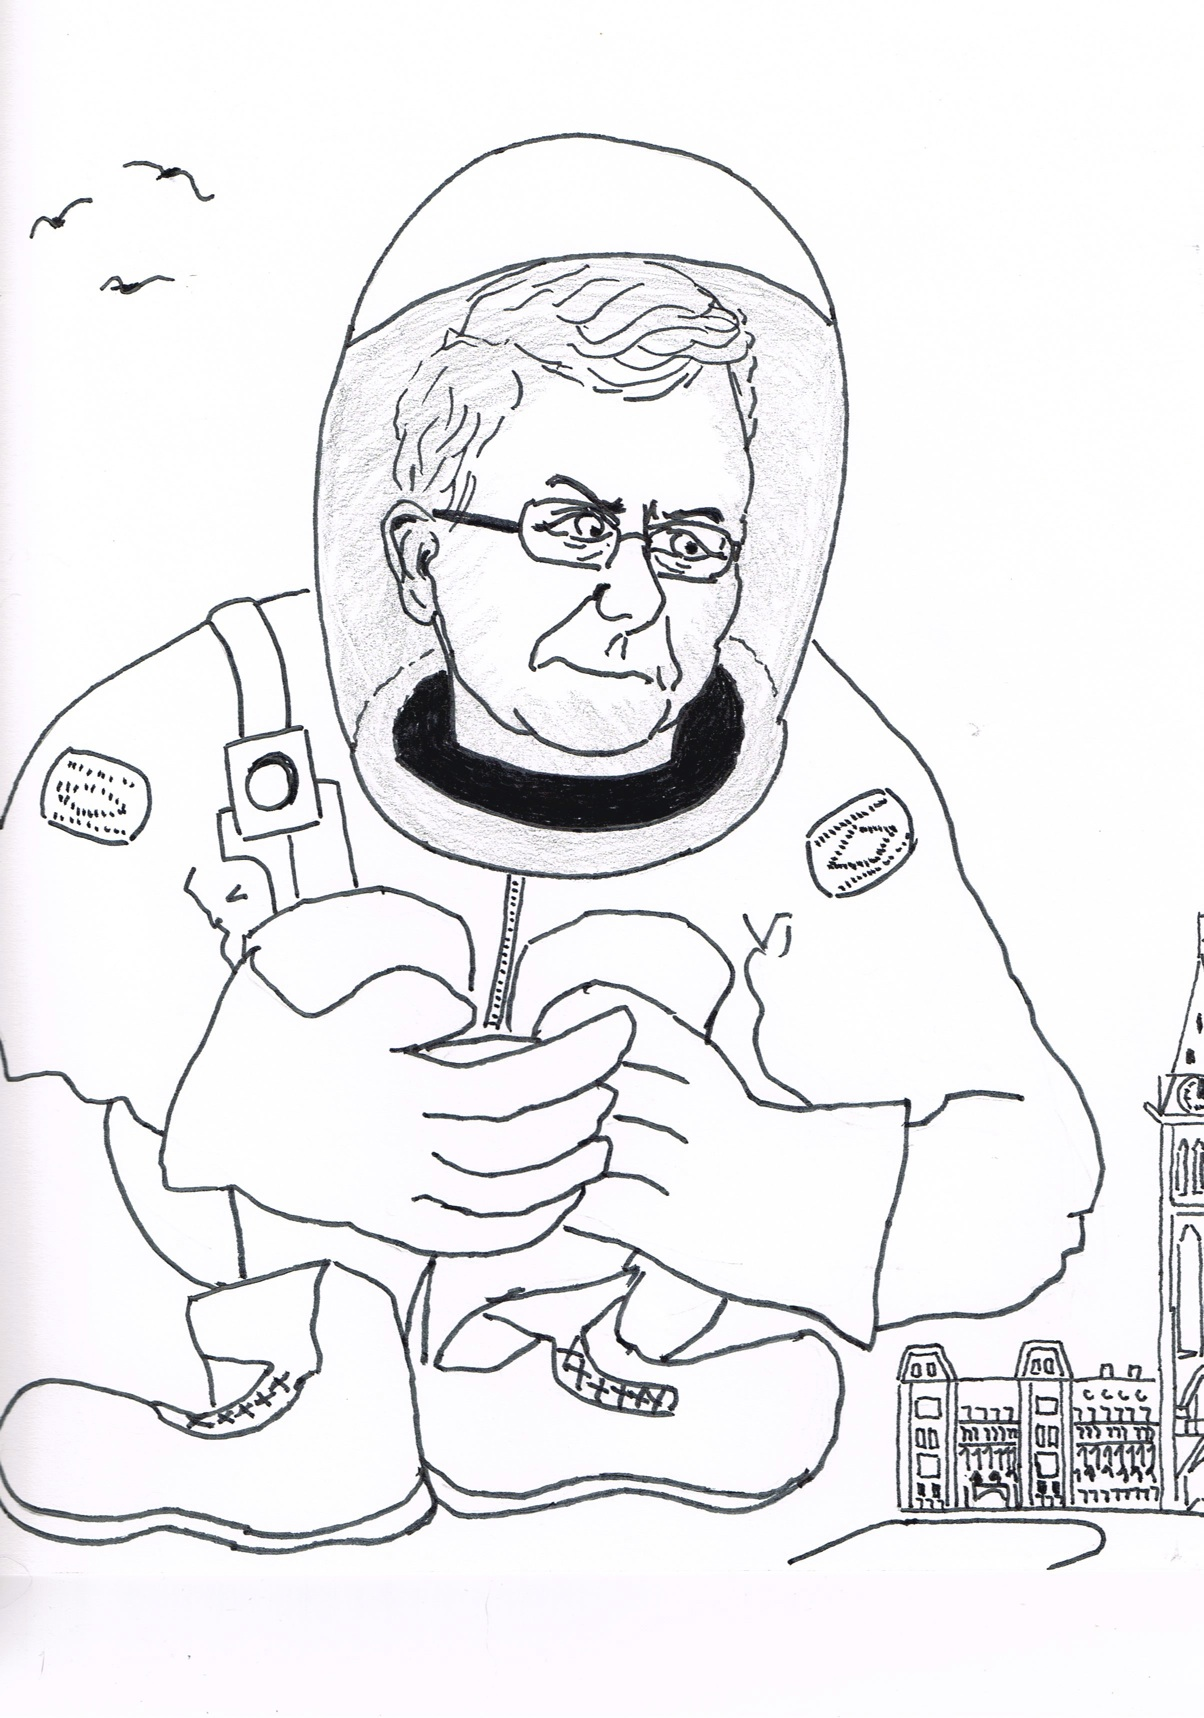 Former Canadian astronaut's dreams of becoming the next Liberal Leader likely will come to naught as Trudeau signs up 150,000 supporters